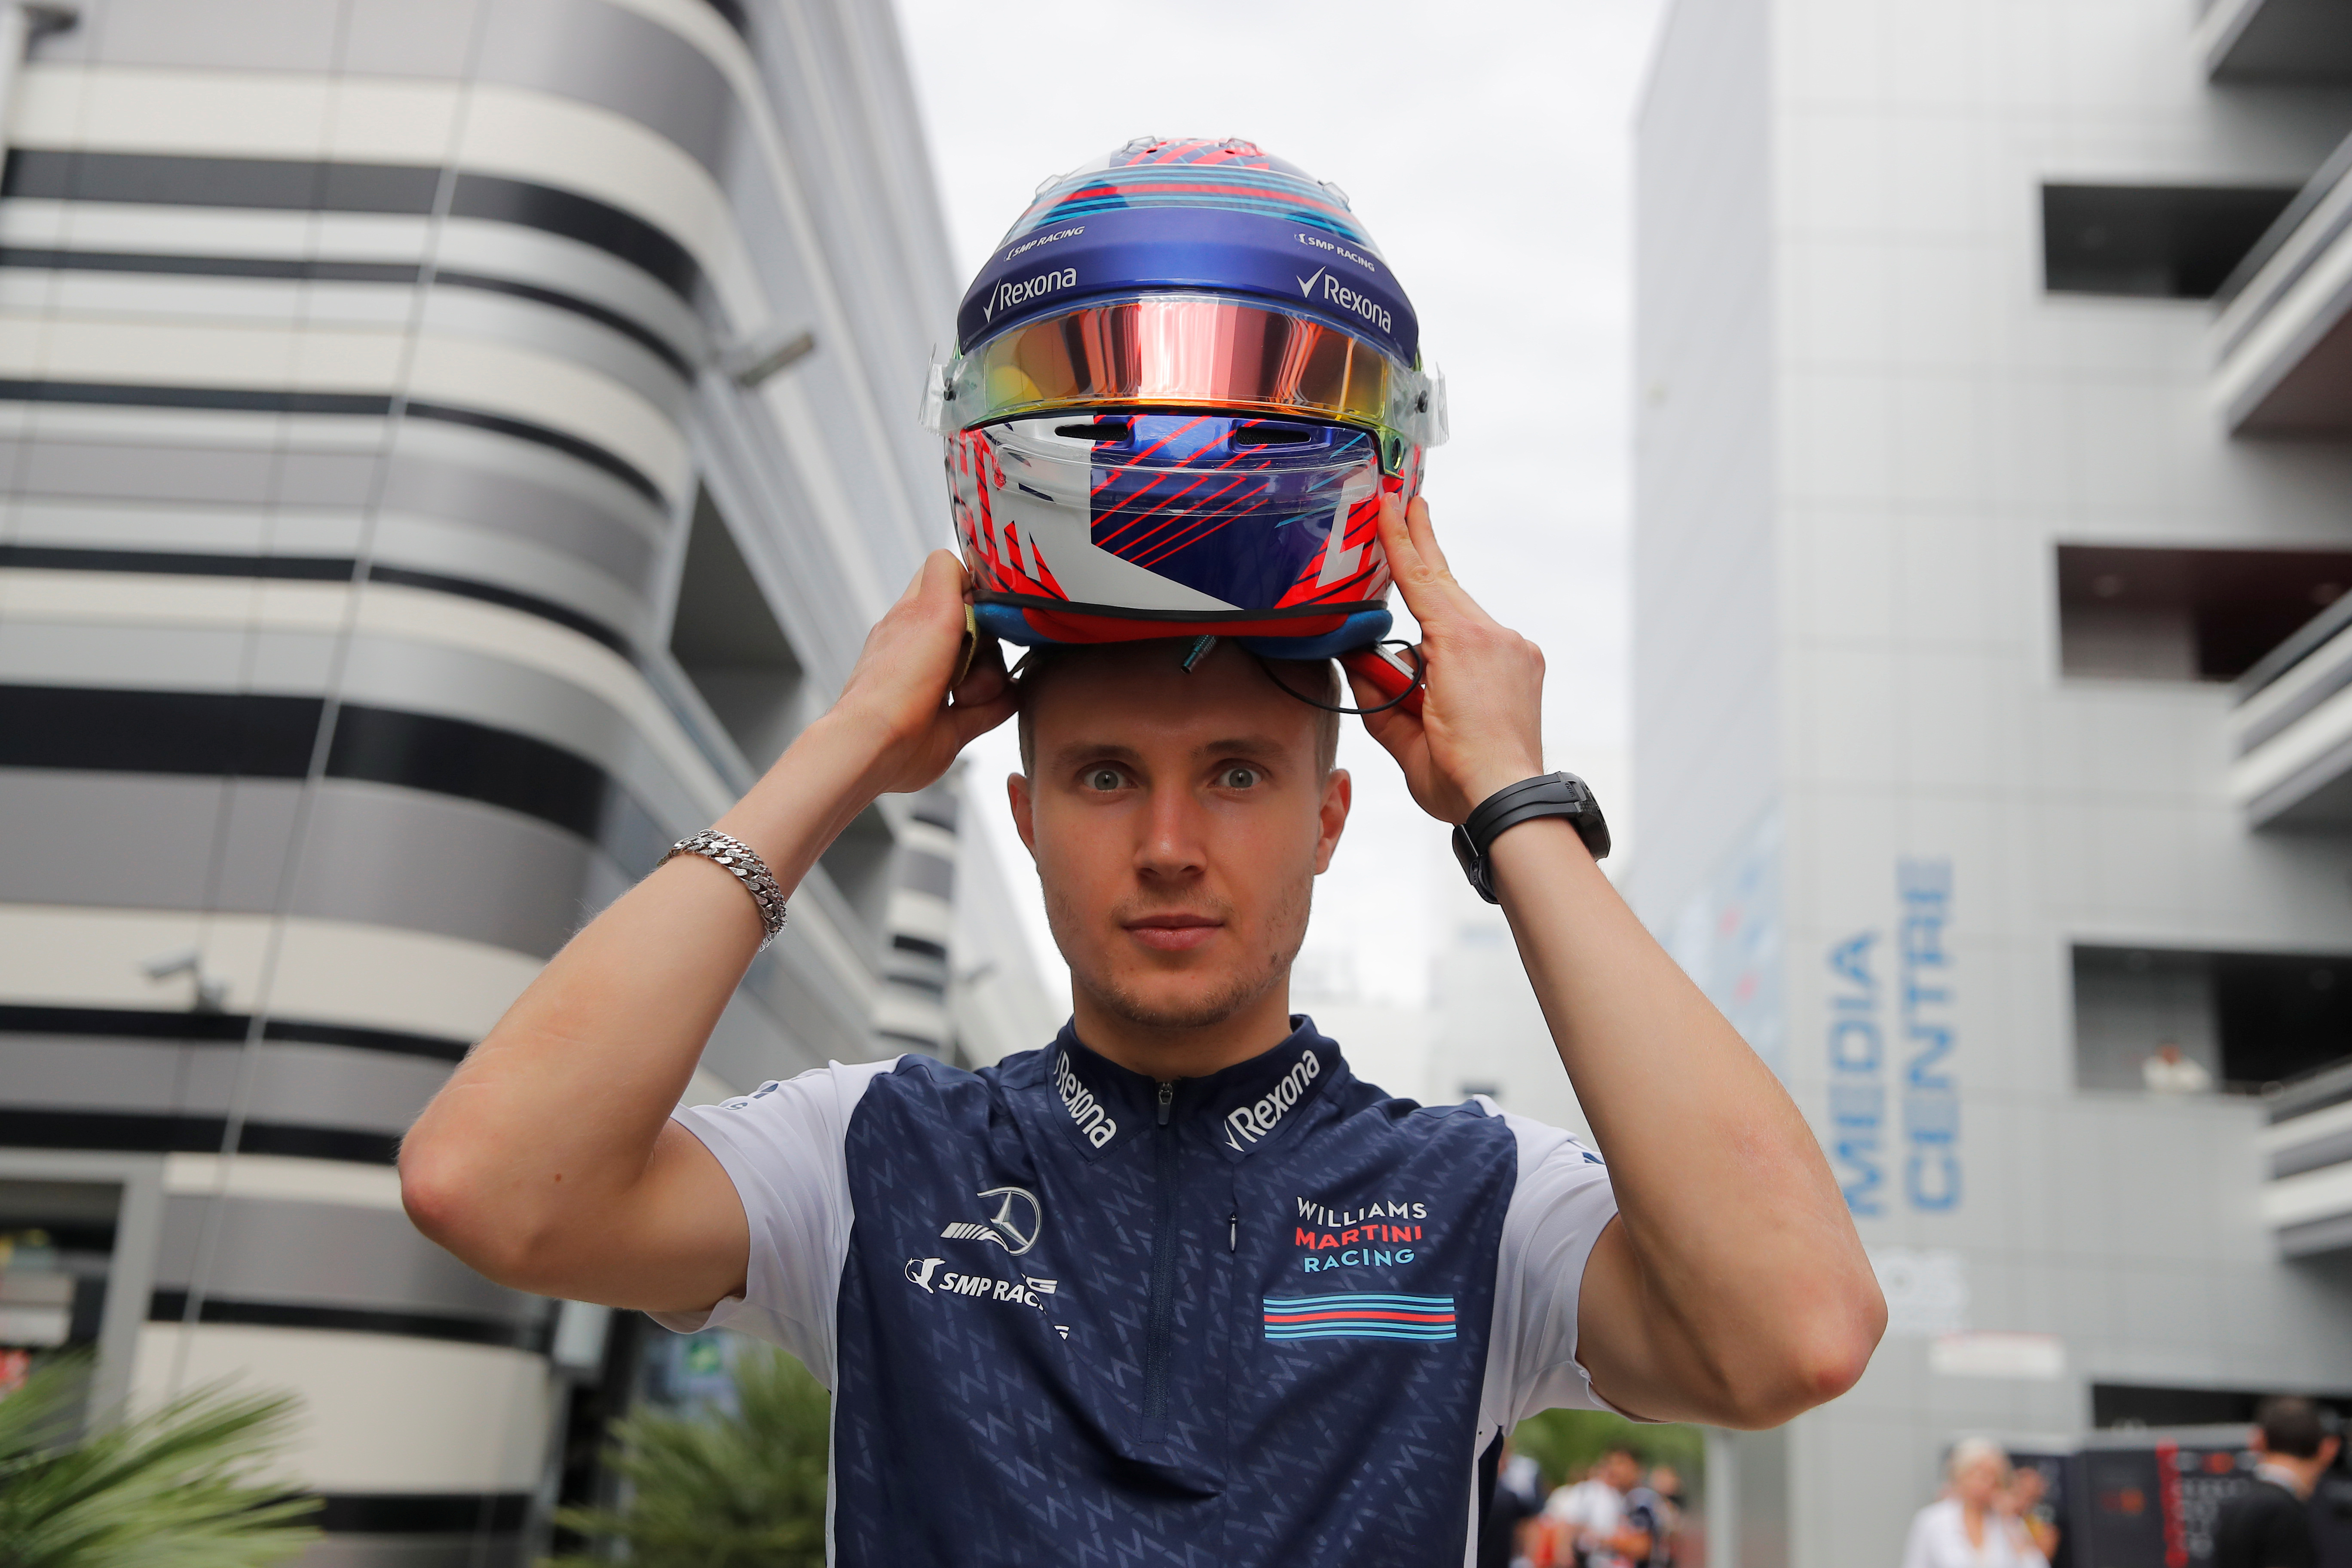 Motor racing: Former Williams F1 driver Sirotkin to race at Le Mans